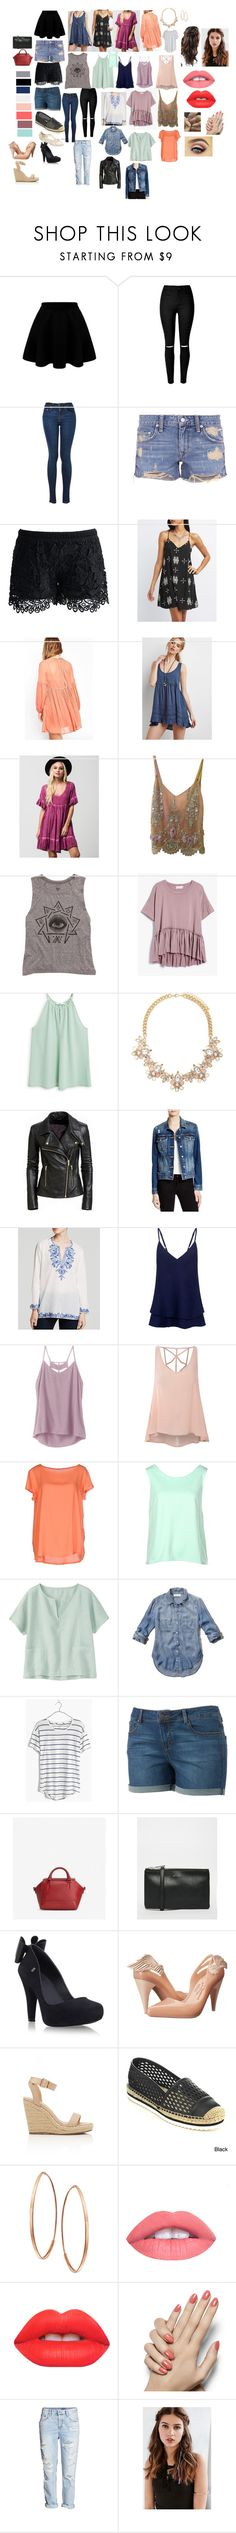 """""""capsule wardrobe spring/summer 2016"""" by jademab on Polyvore featuring mode, Lovers + Friends, Chicwish, Charlotte Russe, Forever 21, ...Lost, Cynthia Rose, Billabong, MANGO et Jean Shop"""